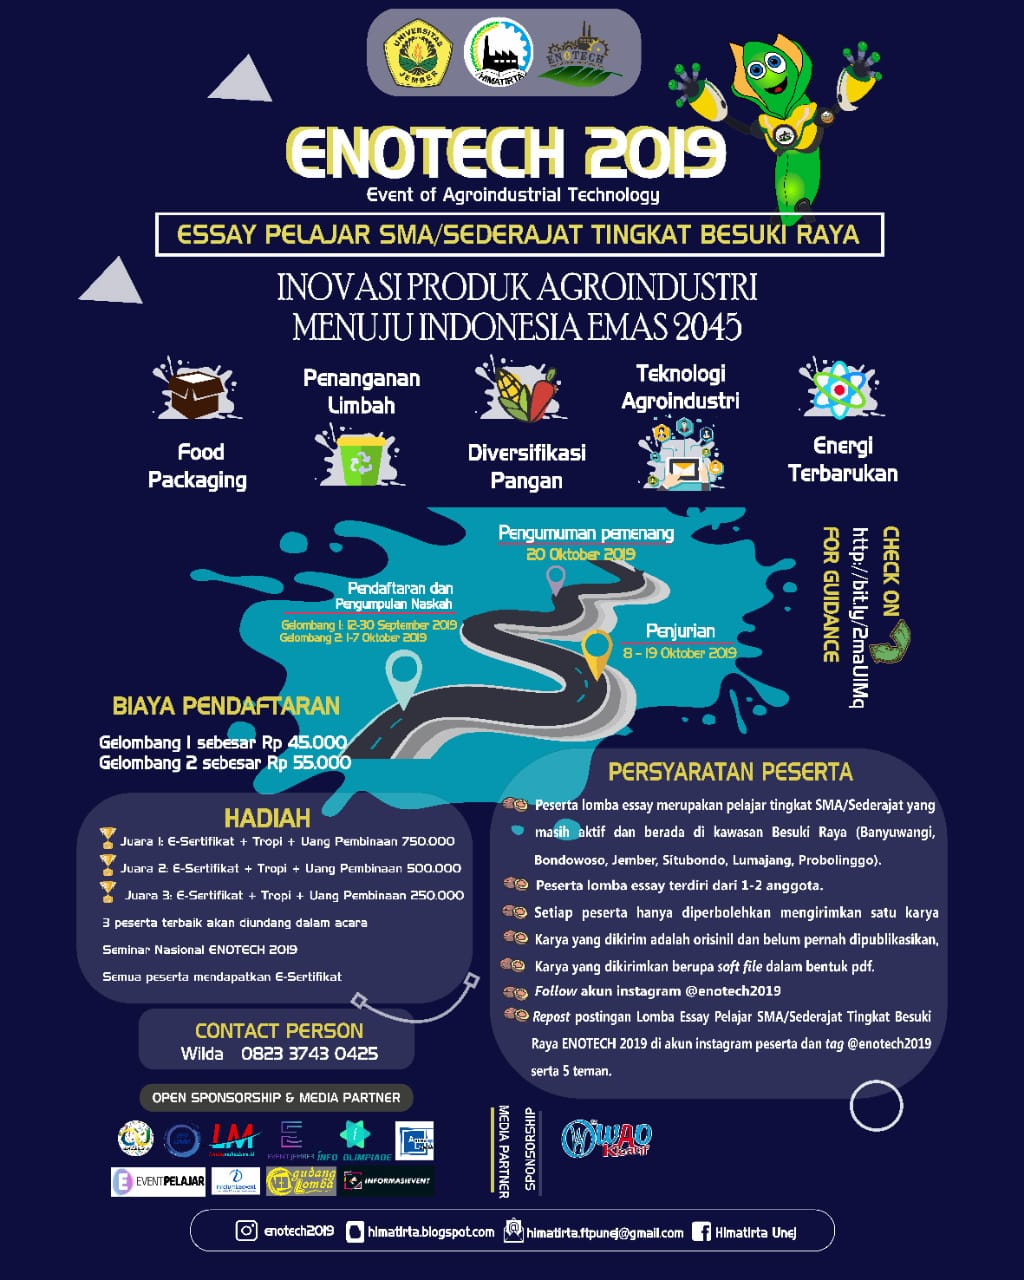 ENOTECH Event of Agroindustrial Technology 2019